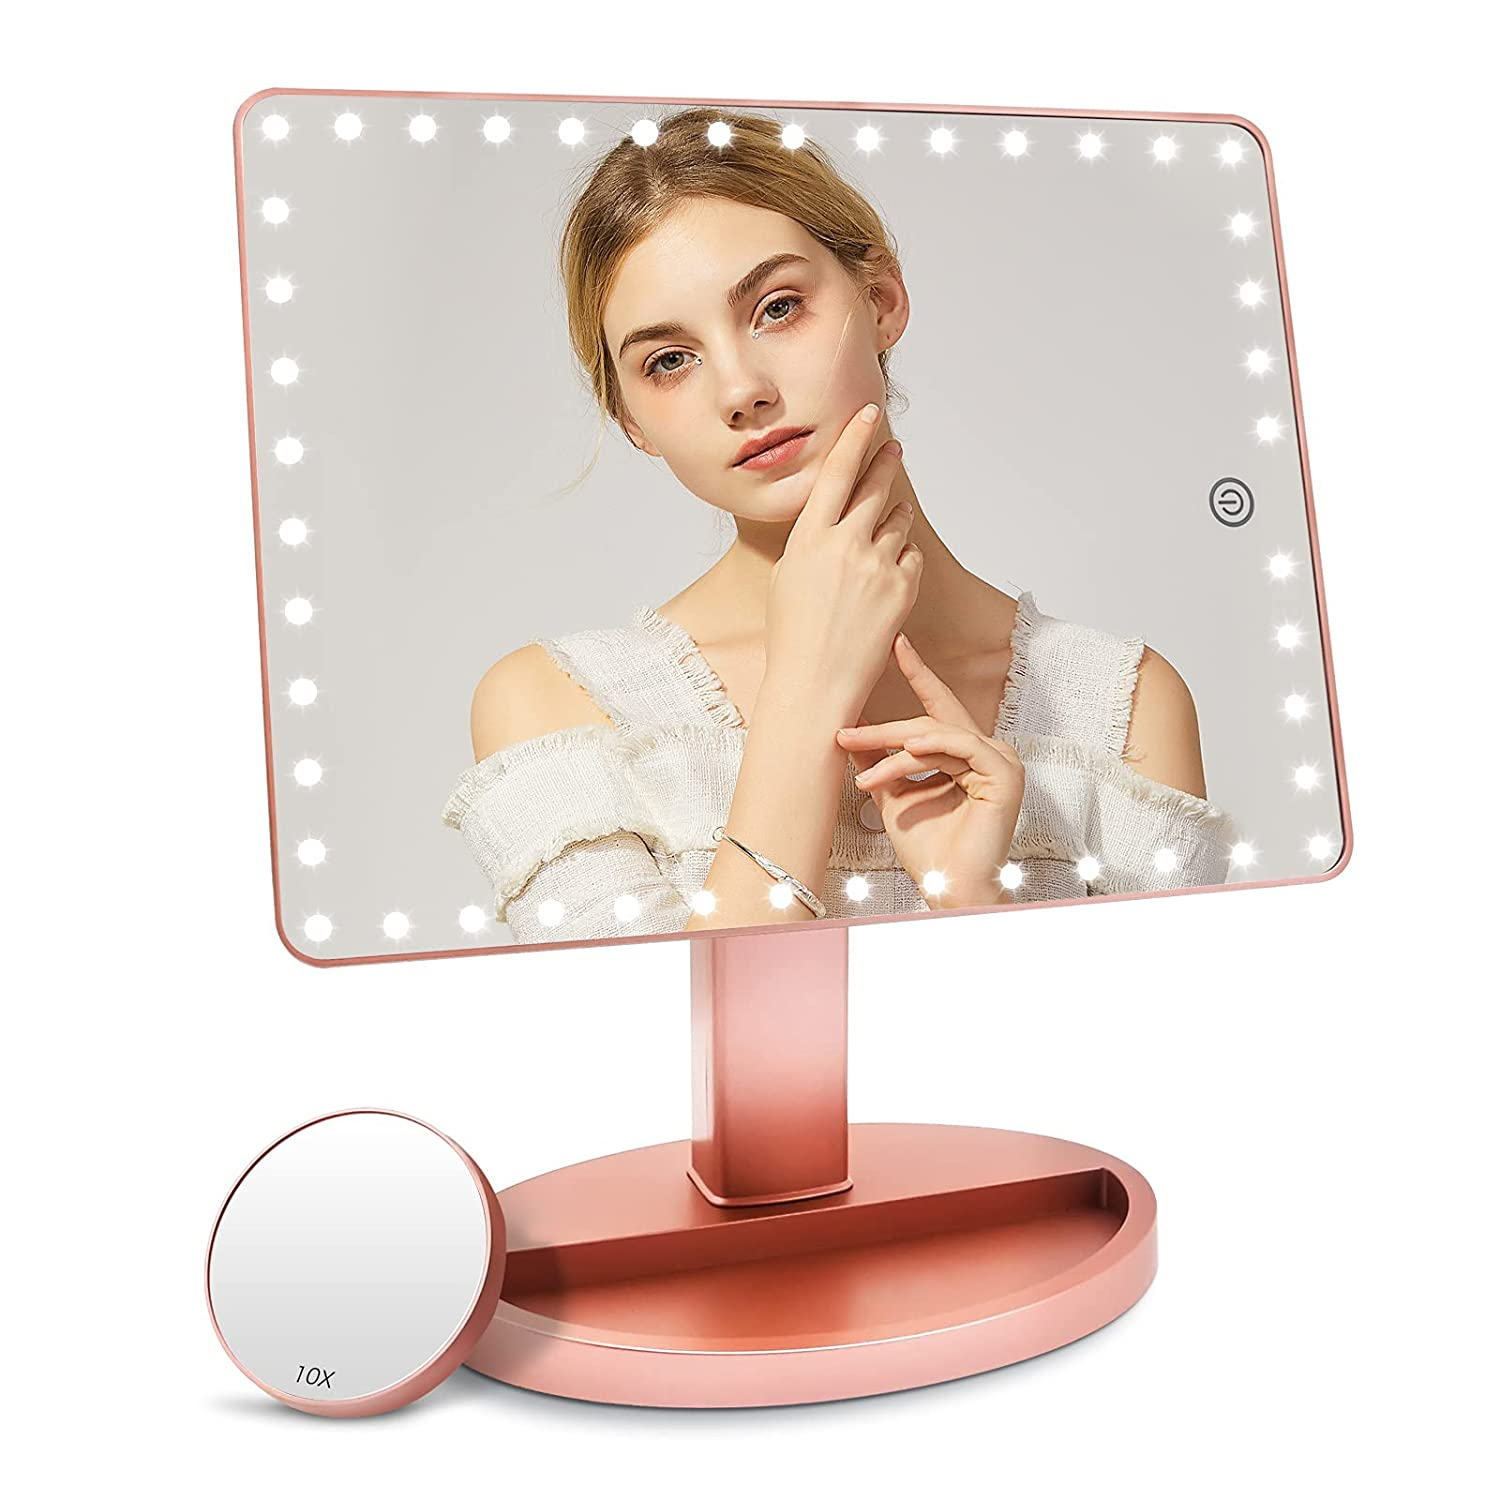 Rechargeable Large Lighted Vanity Makeup Mirror with 45 LED Lights (X-Large Model), Light Up Mirror, Touch Screen and 10X Magnification, 360° Rotation Portable Tabletop Cosmetic Mirror(Rose Gold)